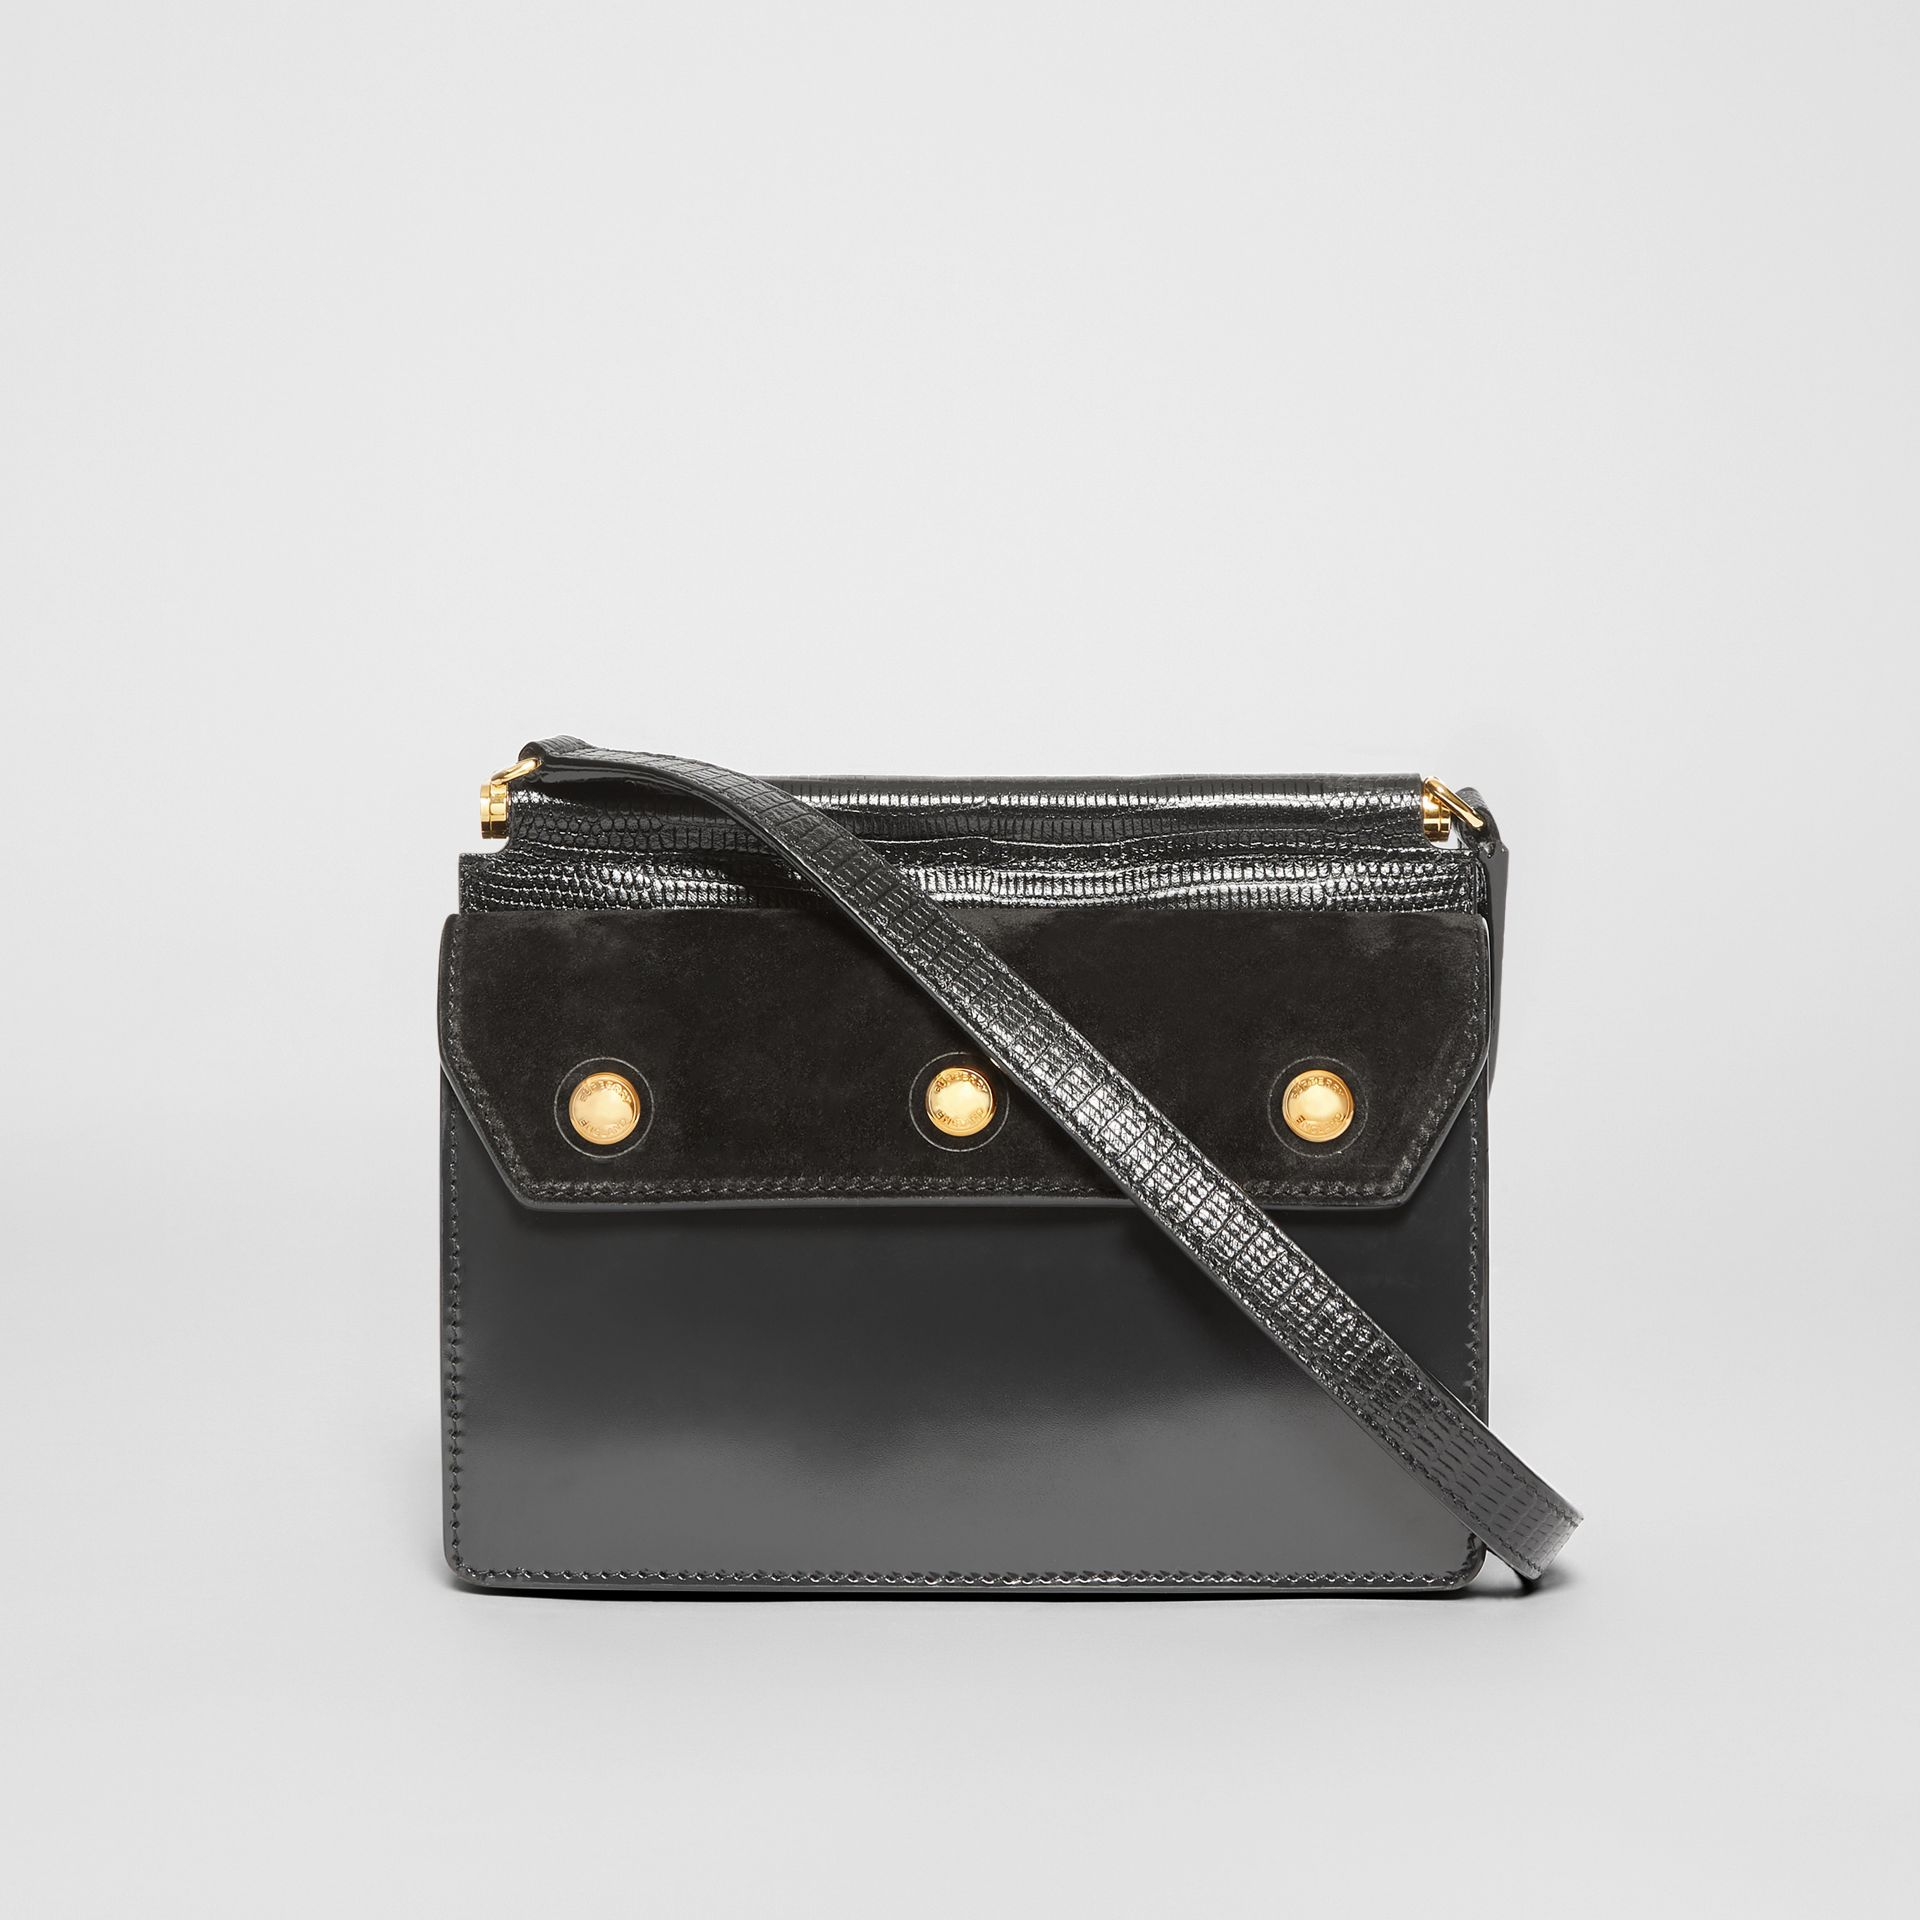 Mini Suede and Leather Title Bag with Pocket Detail in Black - Women | Burberry United Kingdom - gallery image 5